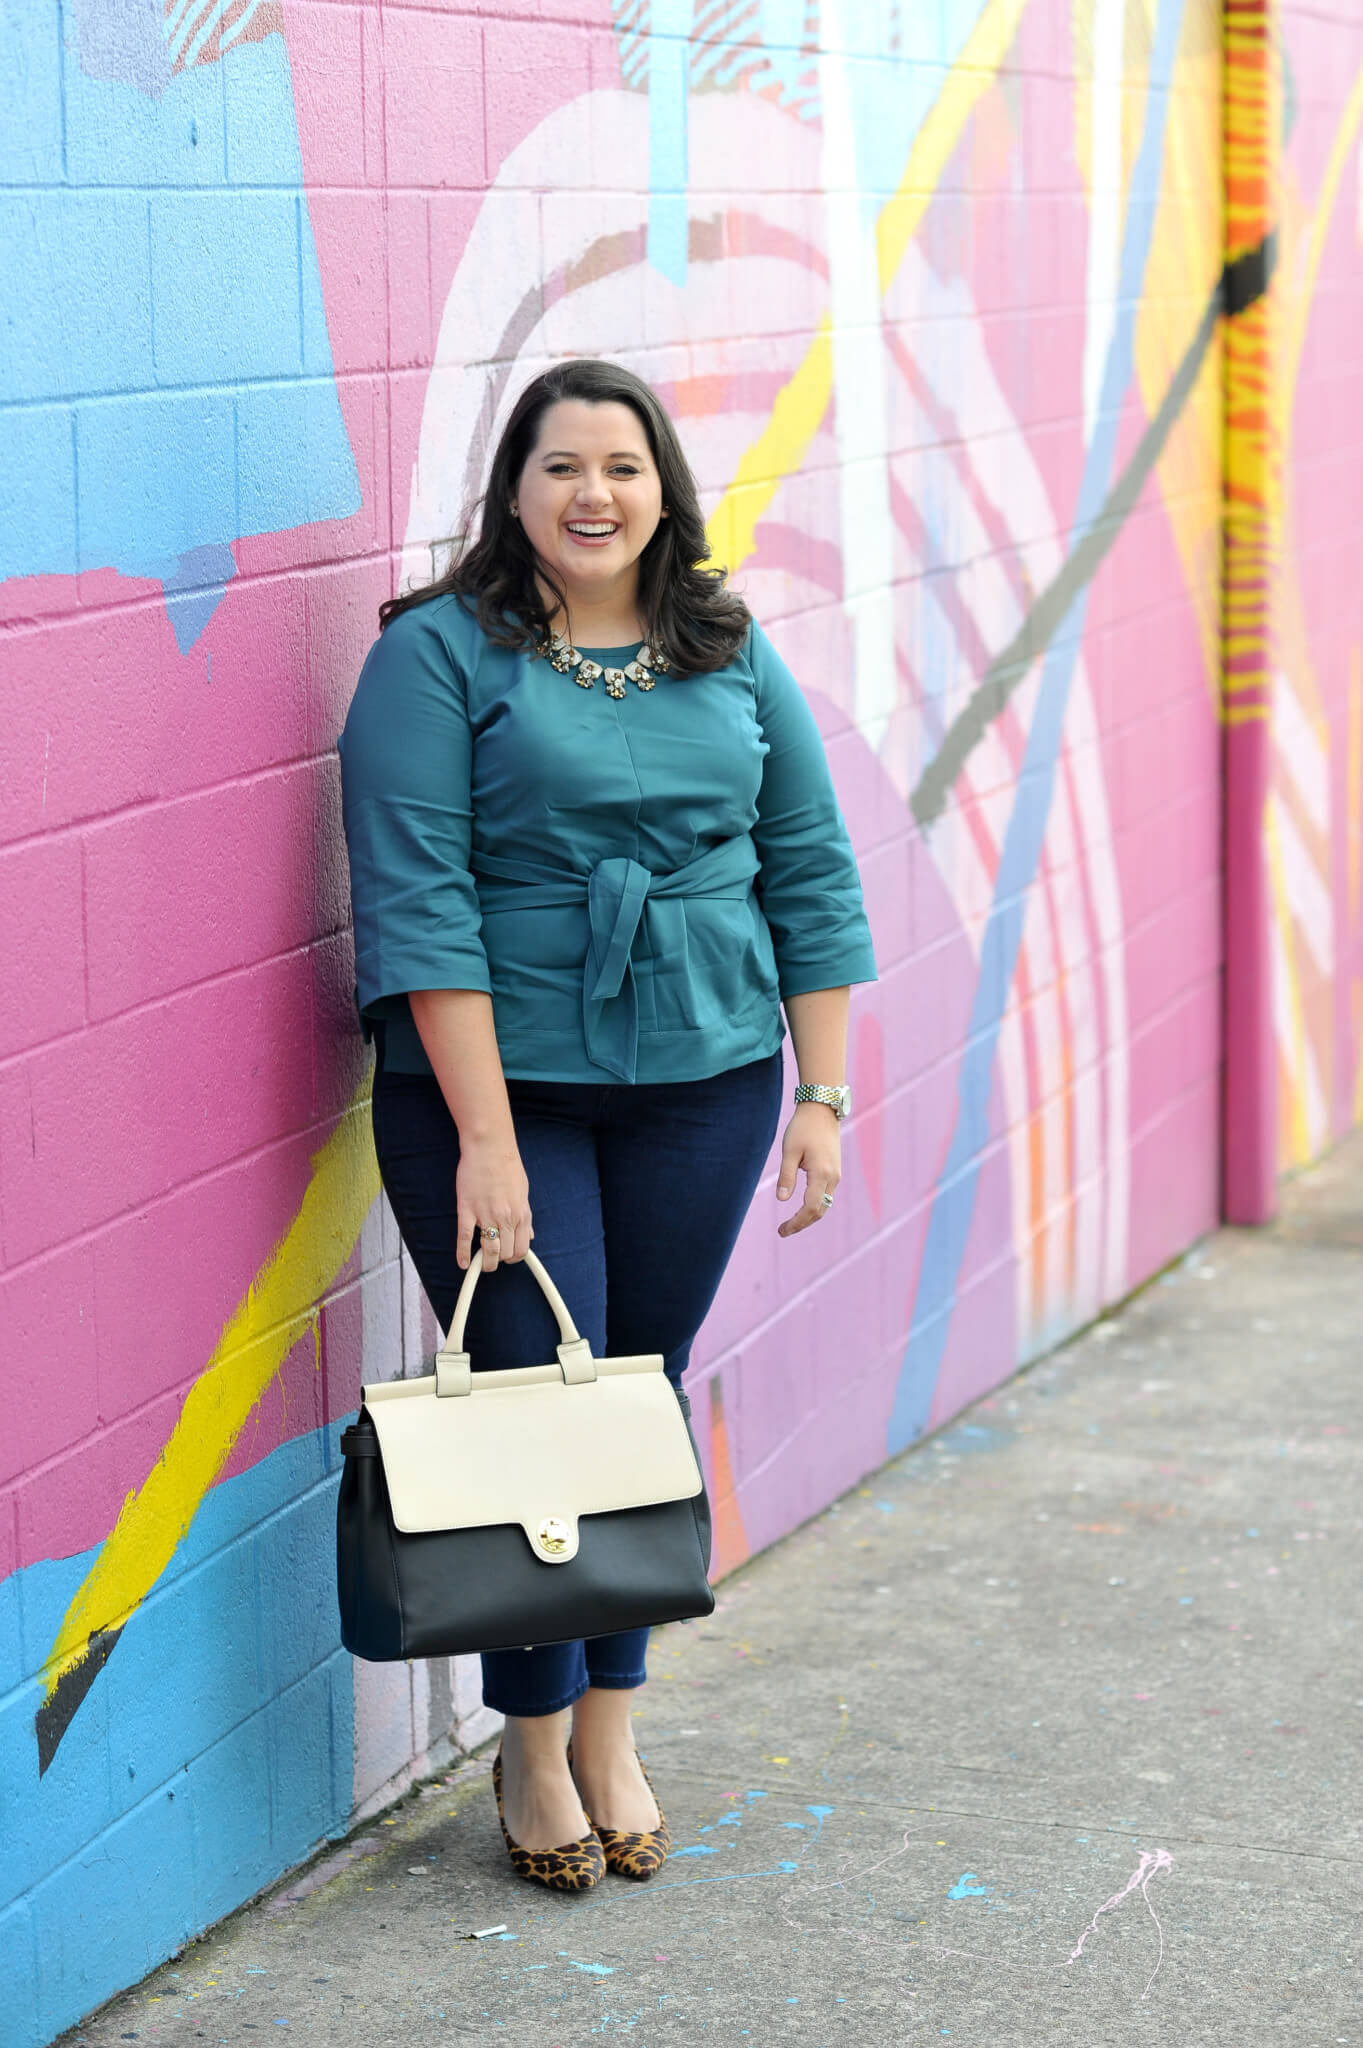 How to wear jeans at work - My company recently went to a flexible dress policy where we can wear jeans to the office. I am challenging myself to style different work outfits that are both appropriate for business casual office and ready for happy hour.